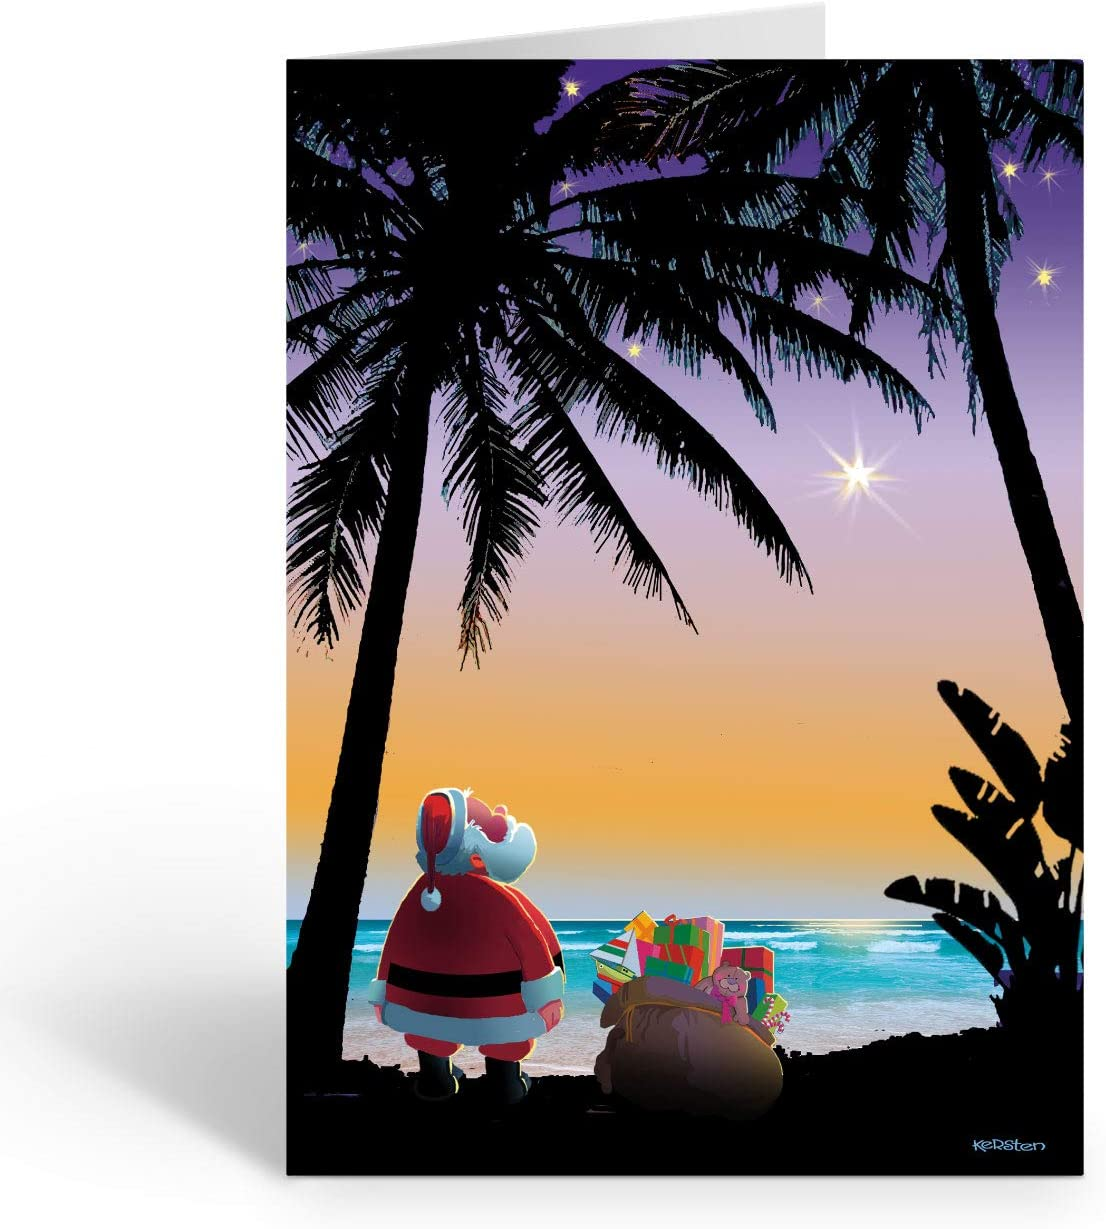 Personalized Tropical Stars Christmas Card - Beach and Tropical 24 Cards and Envelopes (24)